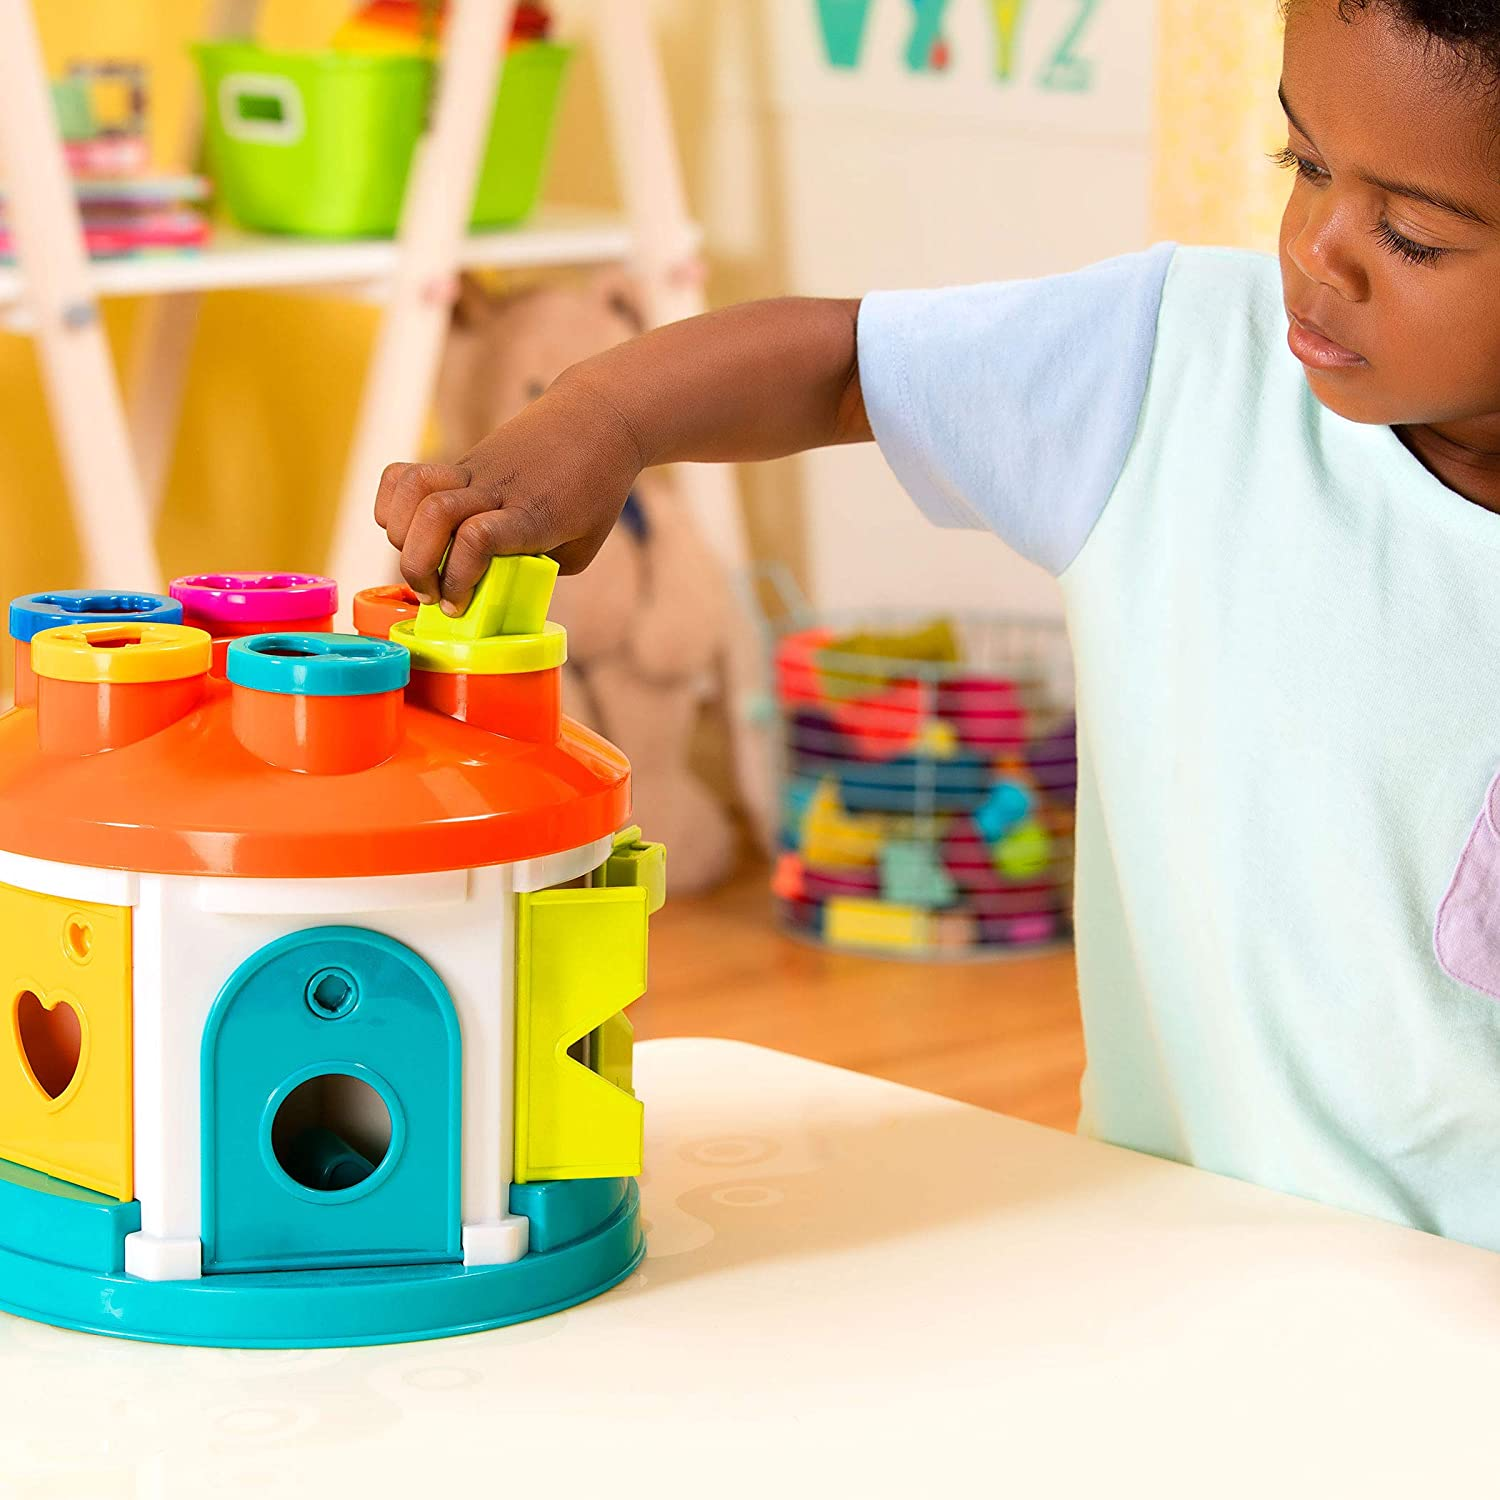 14-Pcs Color and Shape Sorting Toy with 6 Keys and 12 Shapes for Toddlers 2 years + Shape Sorter House Battat